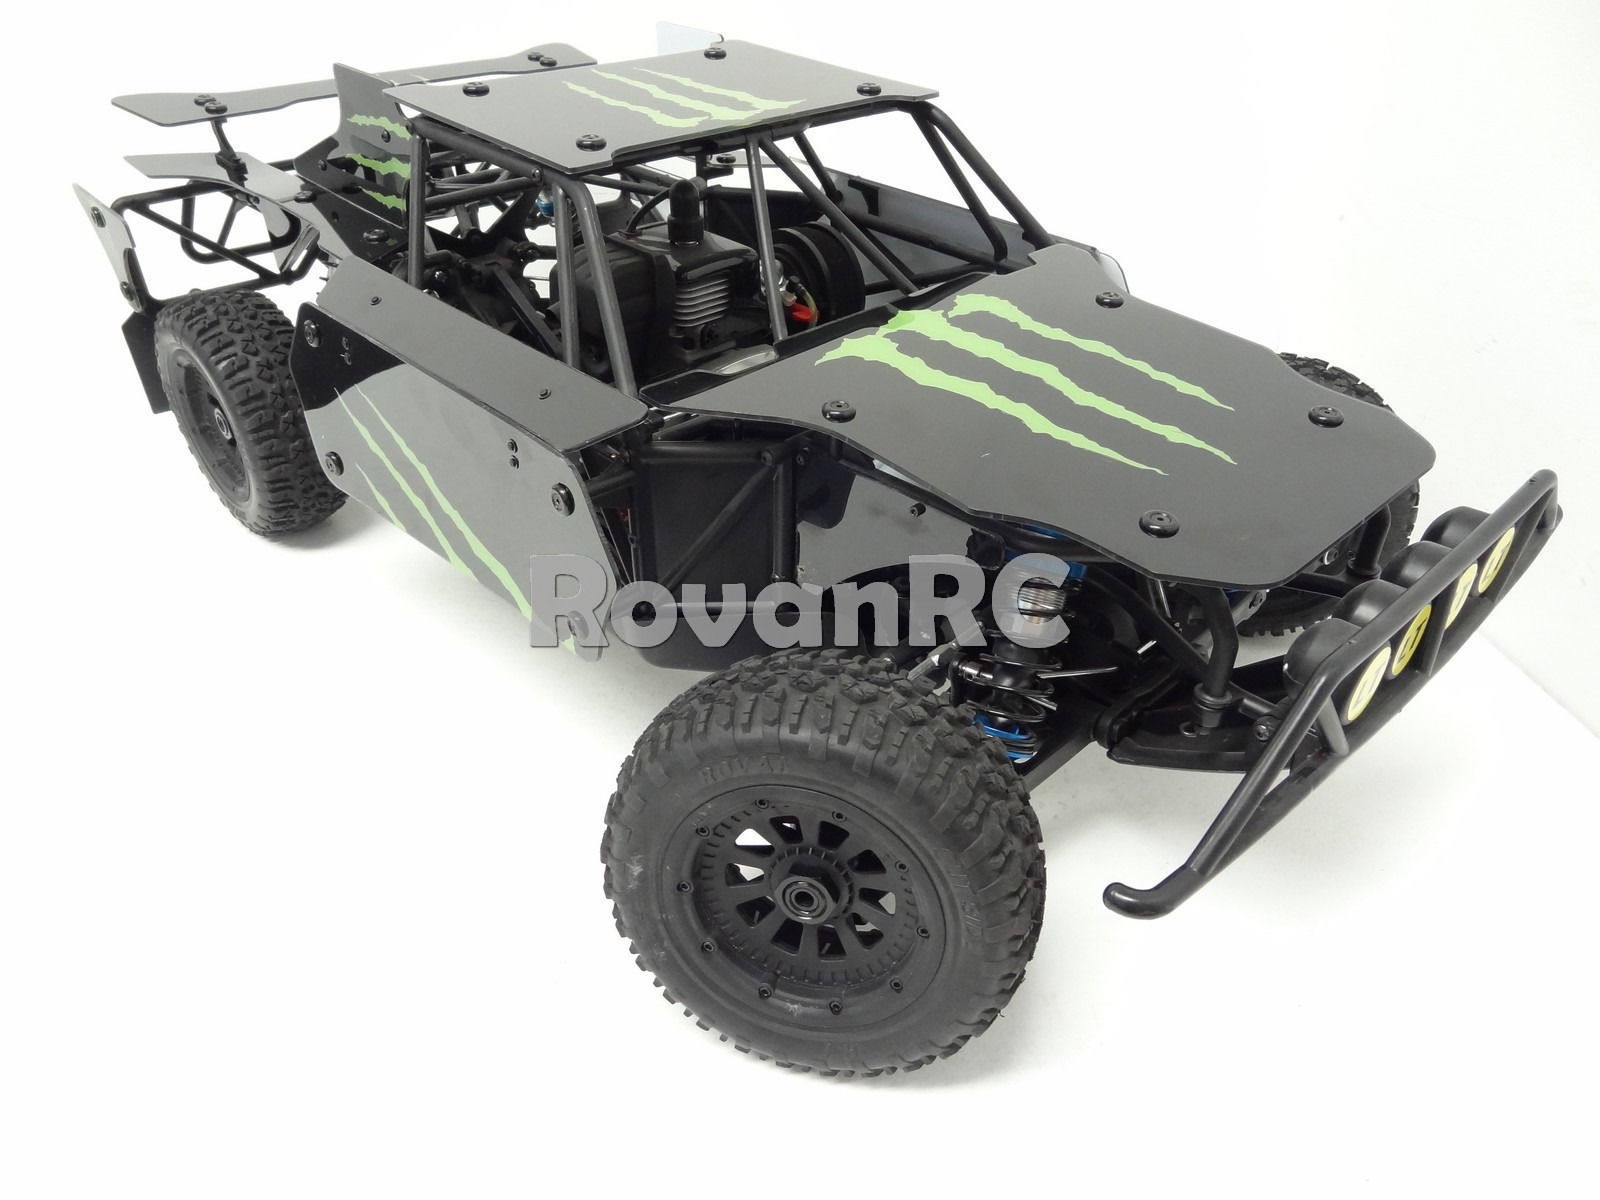 1 5 Scale Rovan LT305 Monster Energy Roll Cage Body Panel Kit Fits LOSI 5IVE T in Parts & Accessories from Toys & Hobbies on Aliexpress